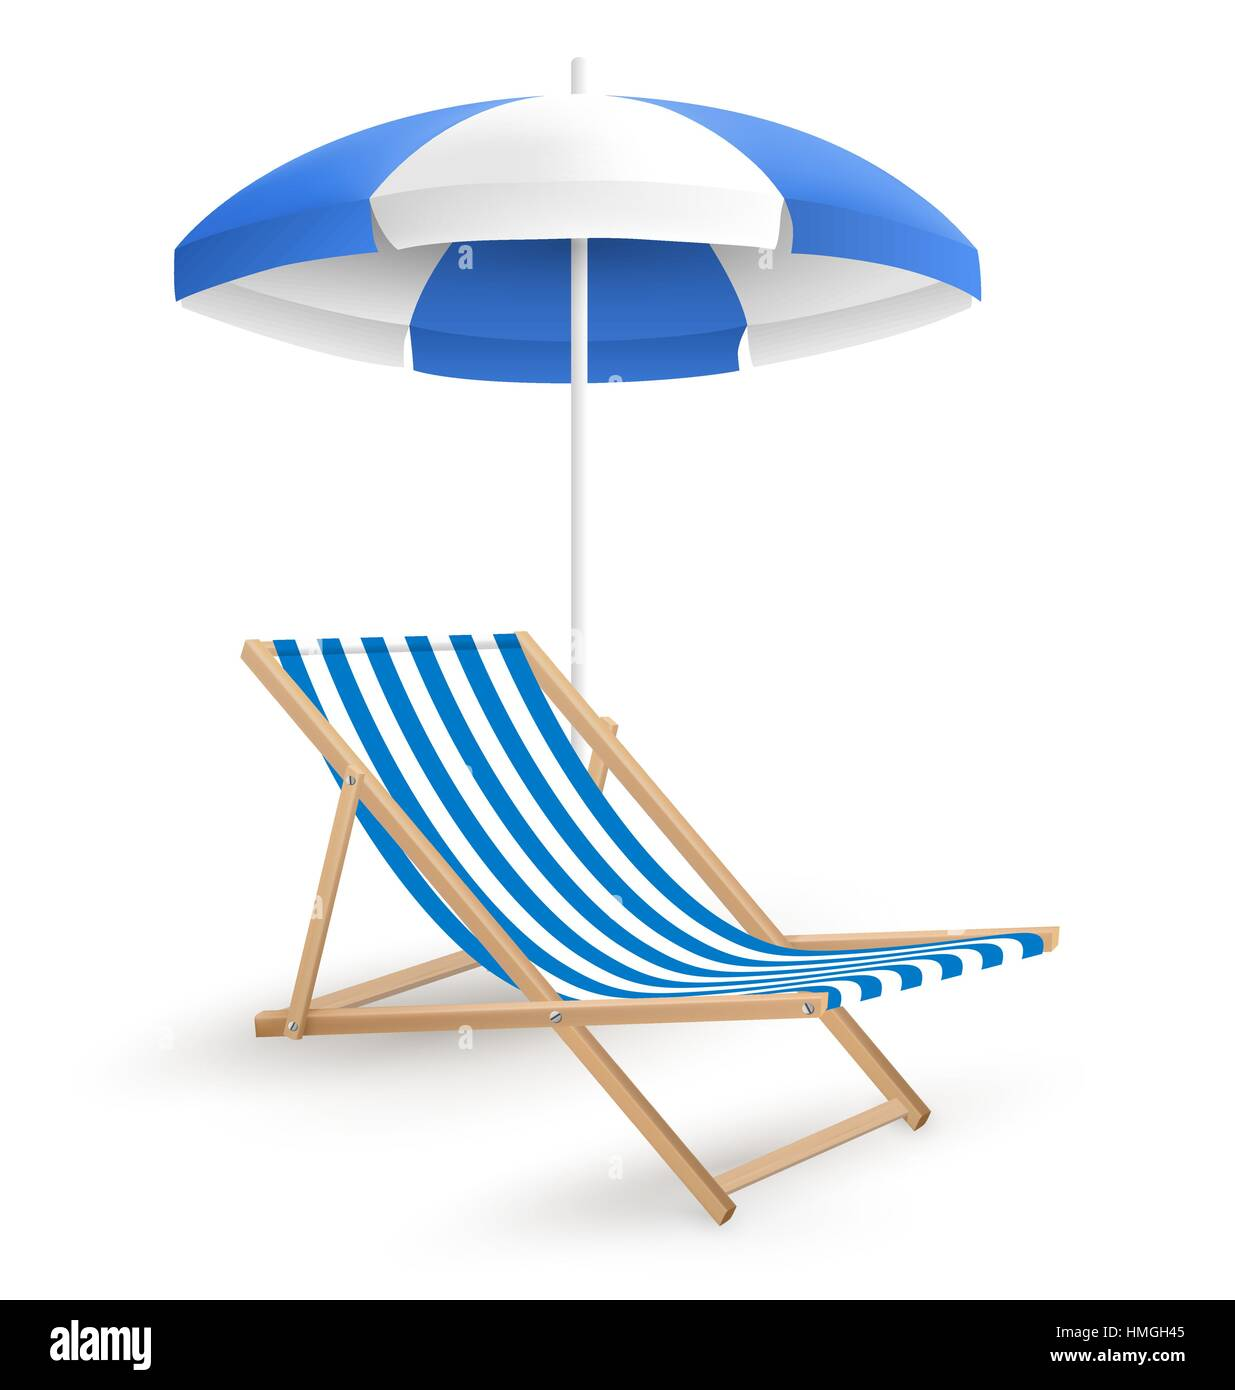 the detachable chair camping cooler man umbrellas umbrella with